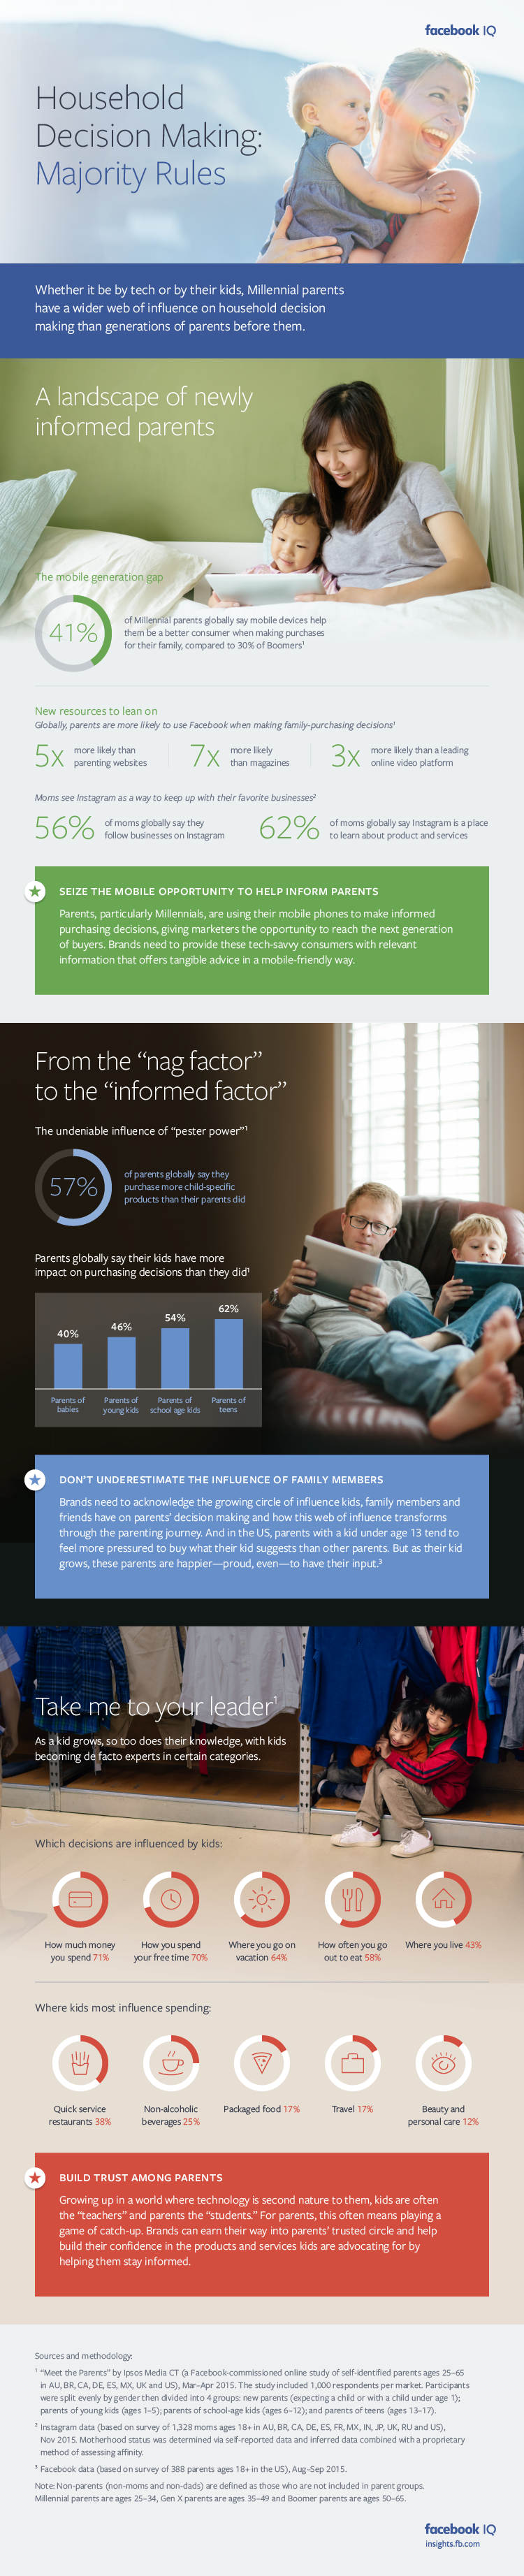 What's Influencing the Purchase Decisions of Parents? [Infographic] | Social Media Today